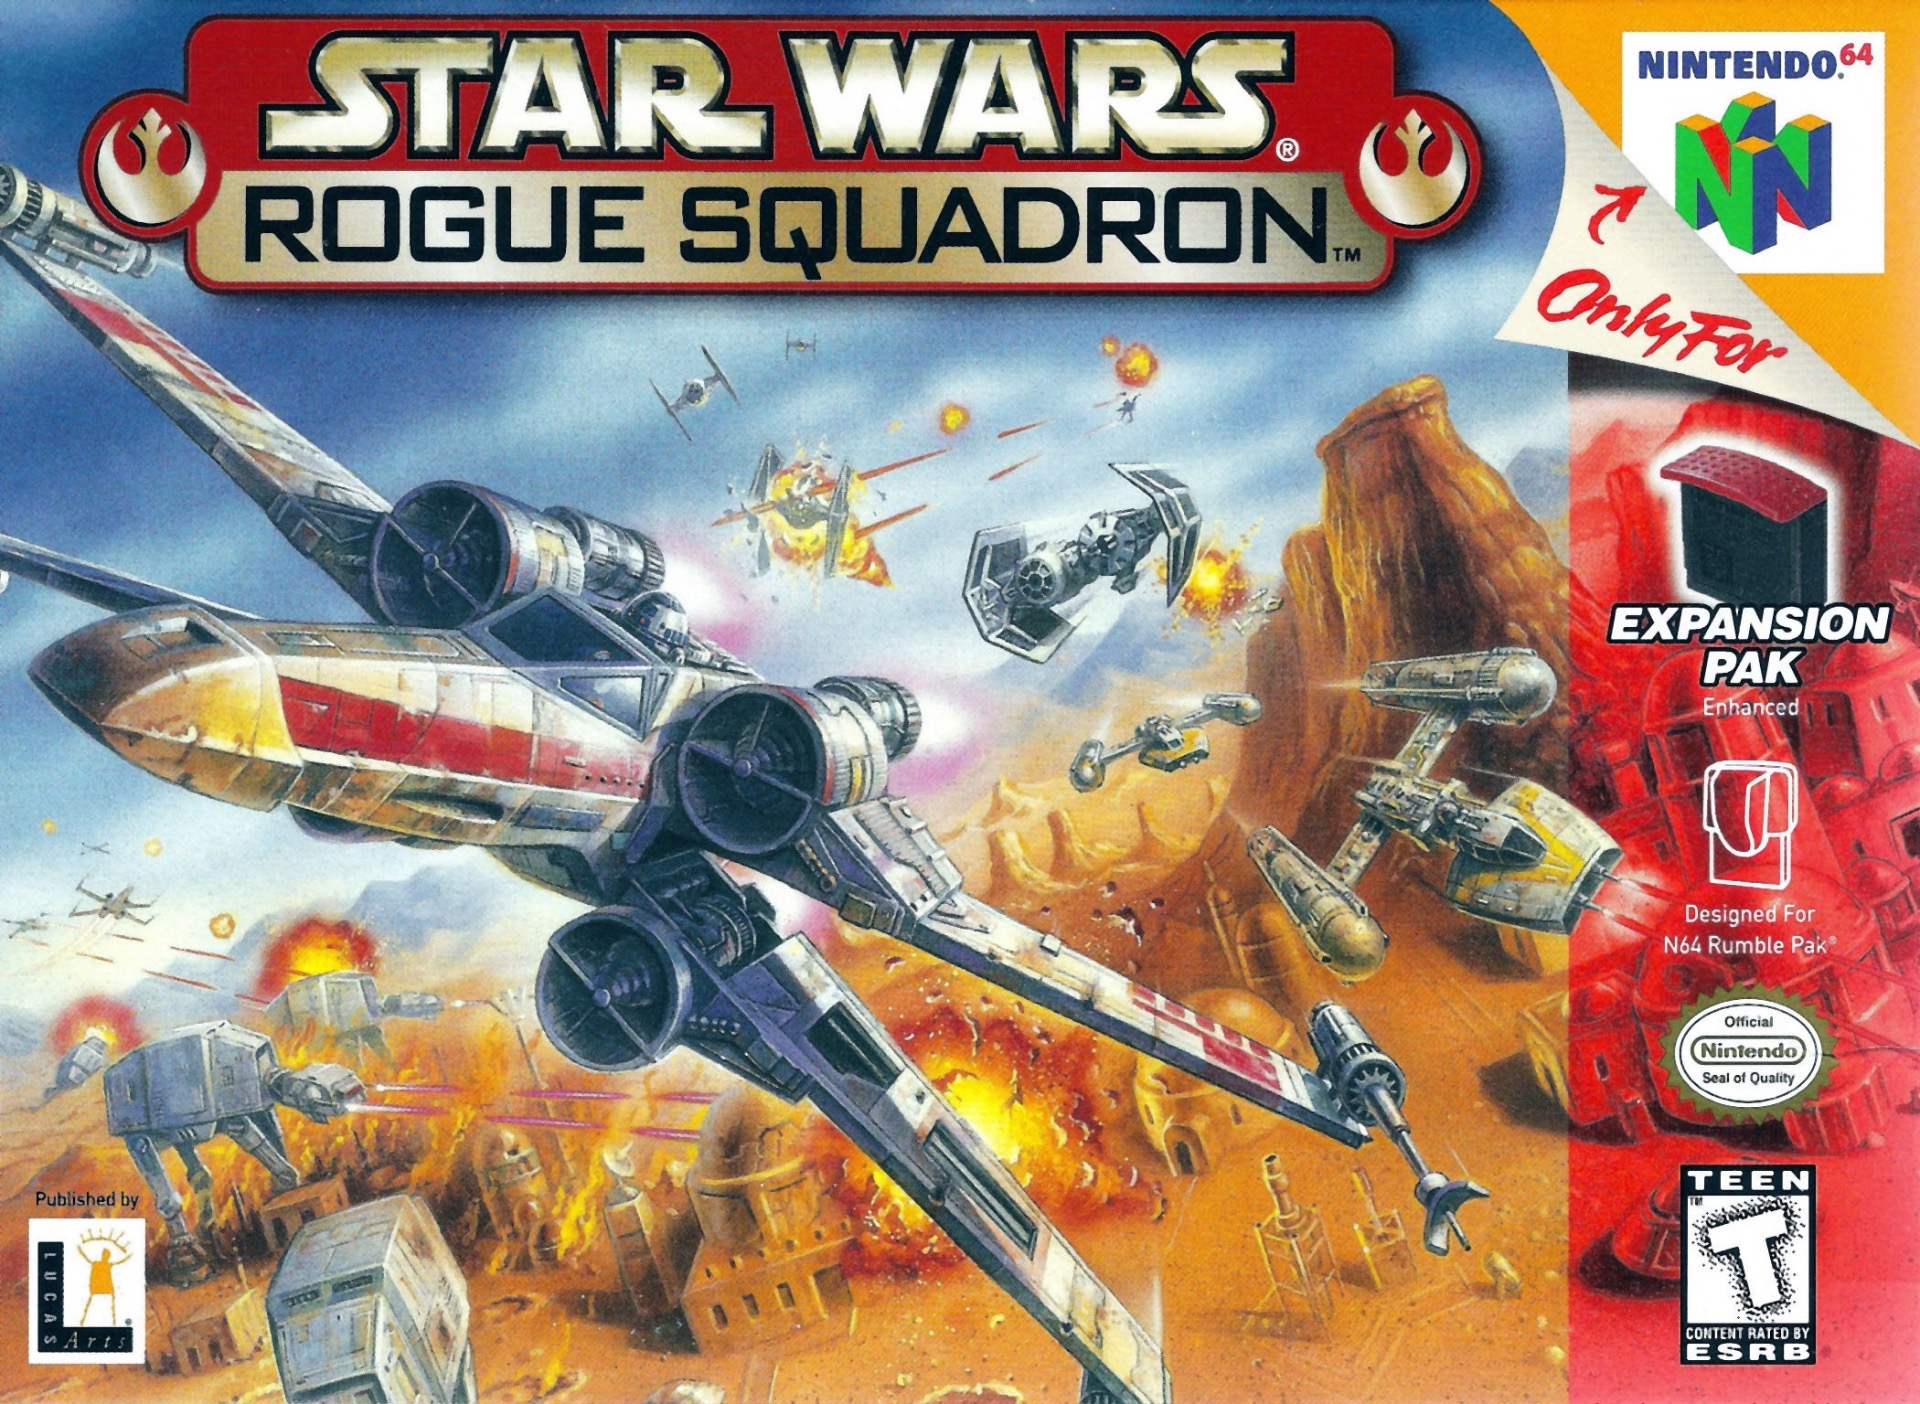 Star Wars: Rogue Squadron.